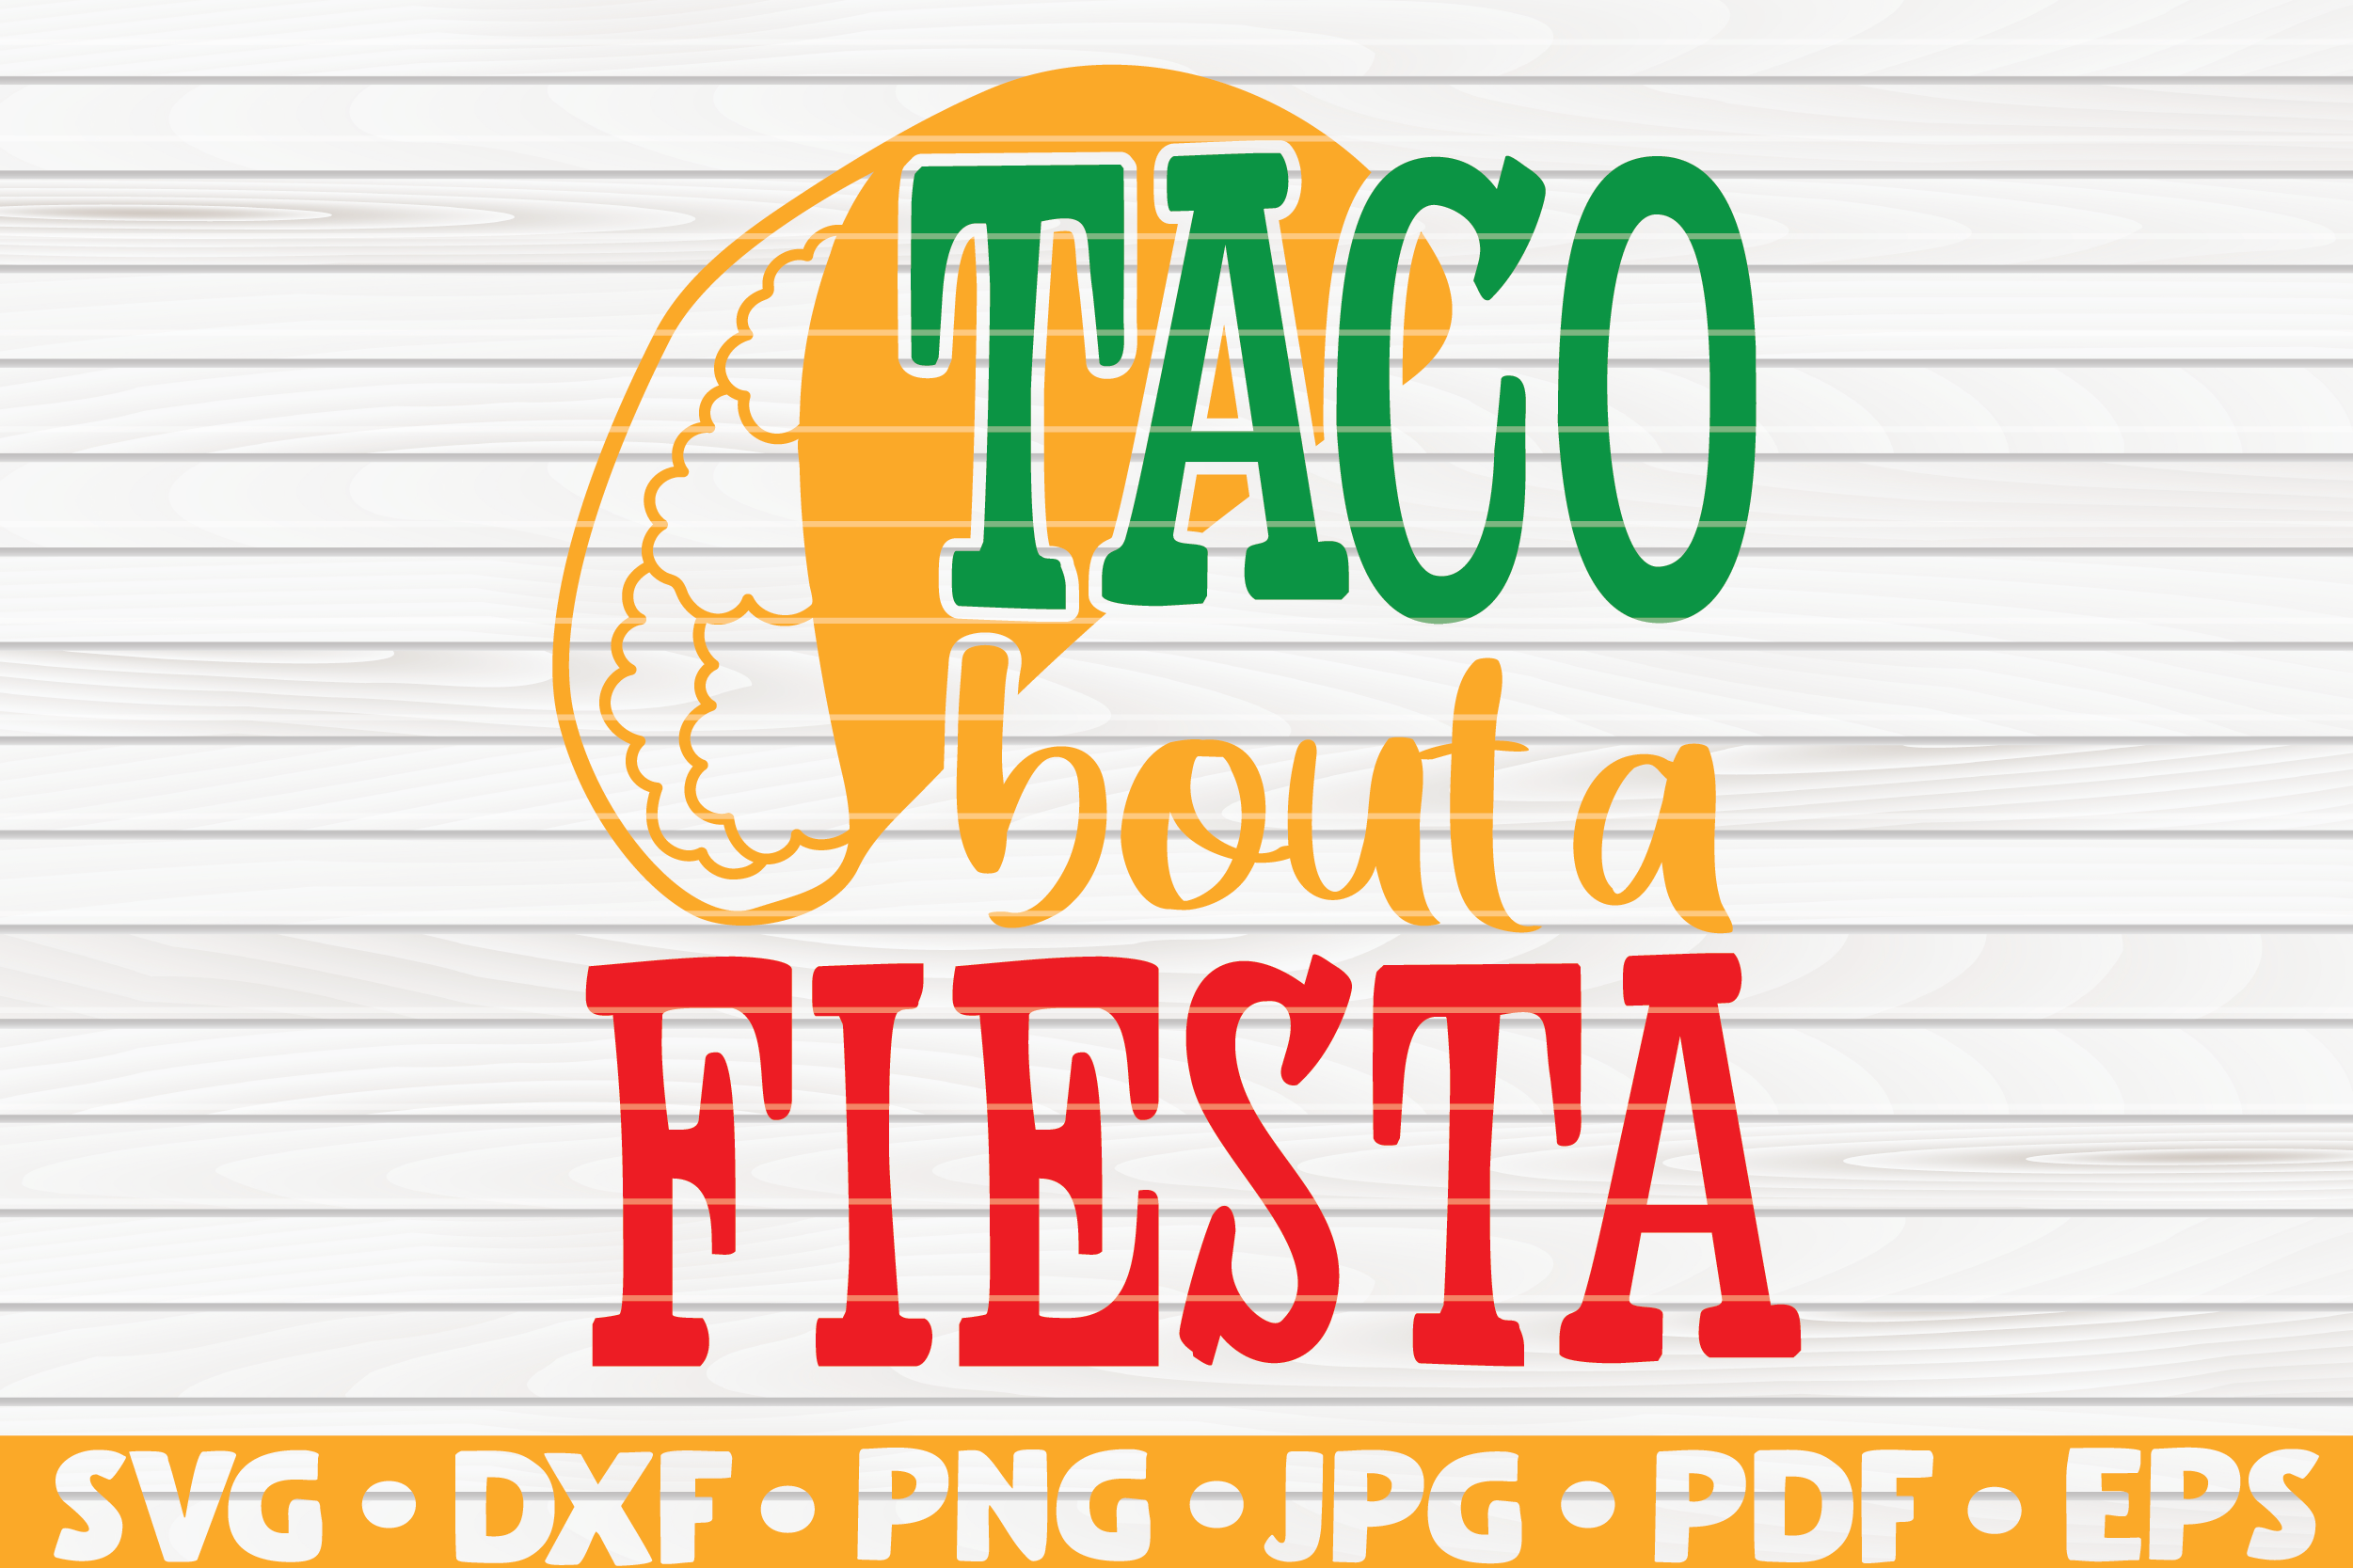 Download Free Taco Bout A Fiesta Cinco De Mayo Graphic By Mihaibadea95 for Cricut Explore, Silhouette and other cutting machines.